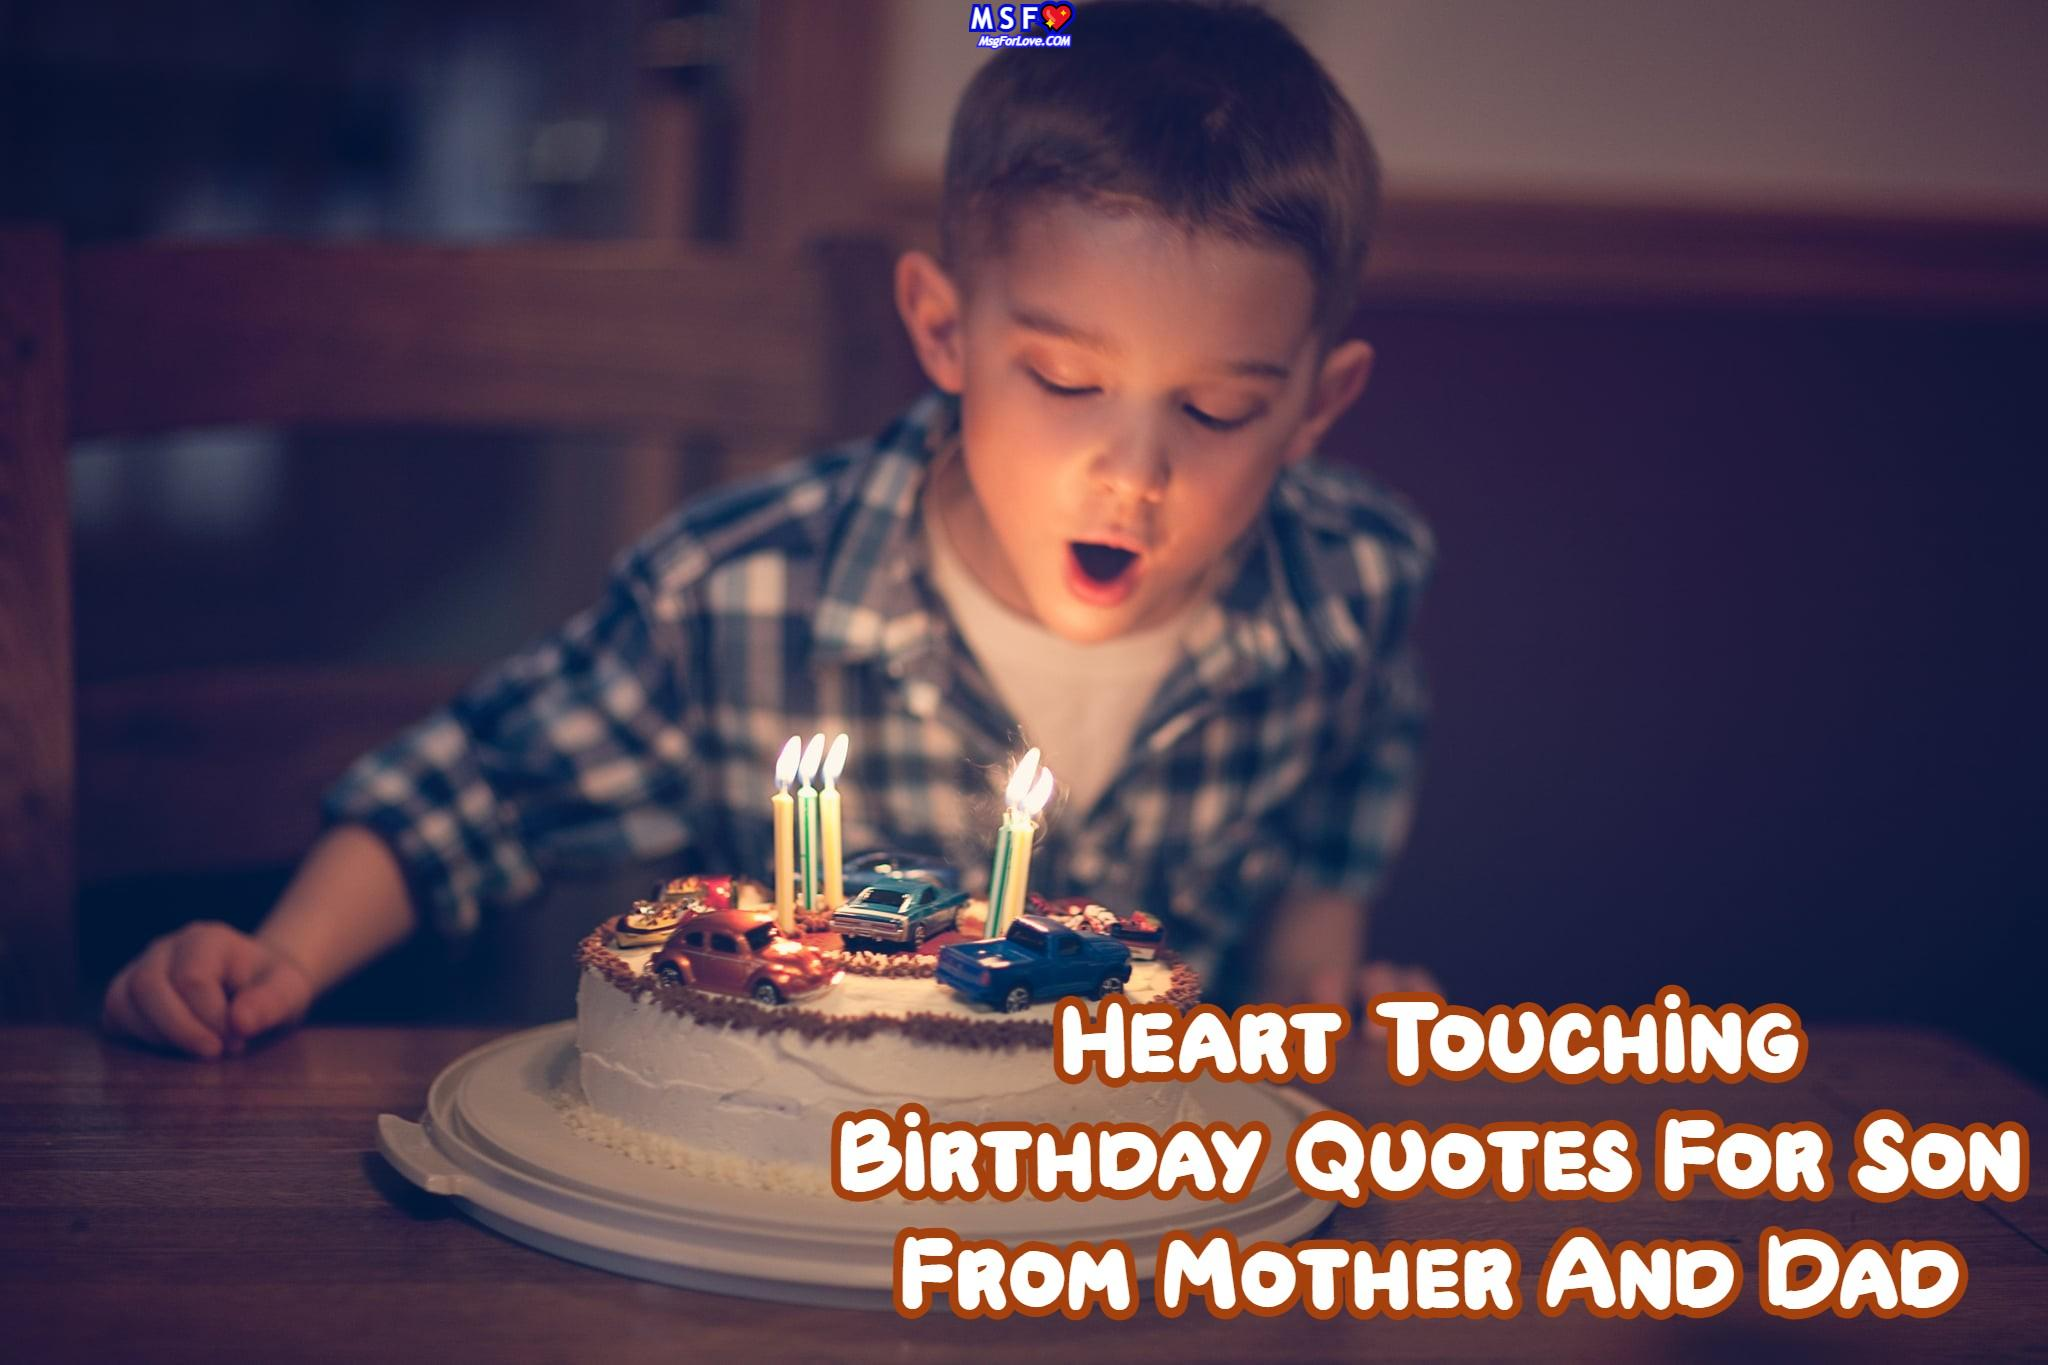 Heart Touching Birthday Quotes For Son